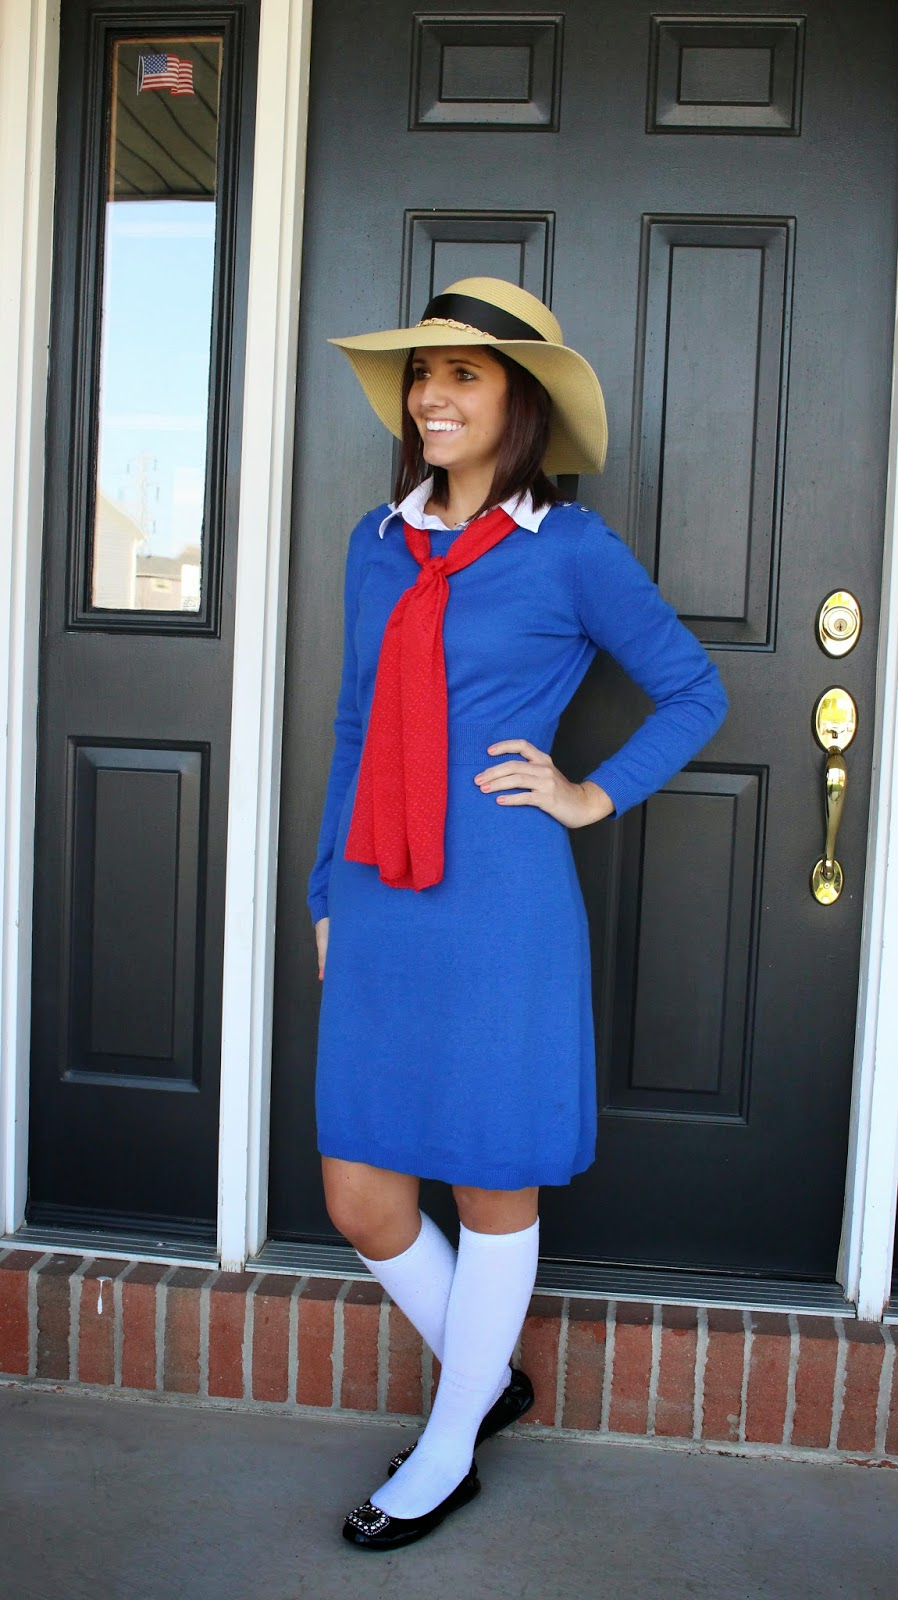 Madeline u2013 source  sc 1 st  Simple Made Pretty & 30 Last Minute Halloween Costume Ideas Using a Blue Dress - Simple ...